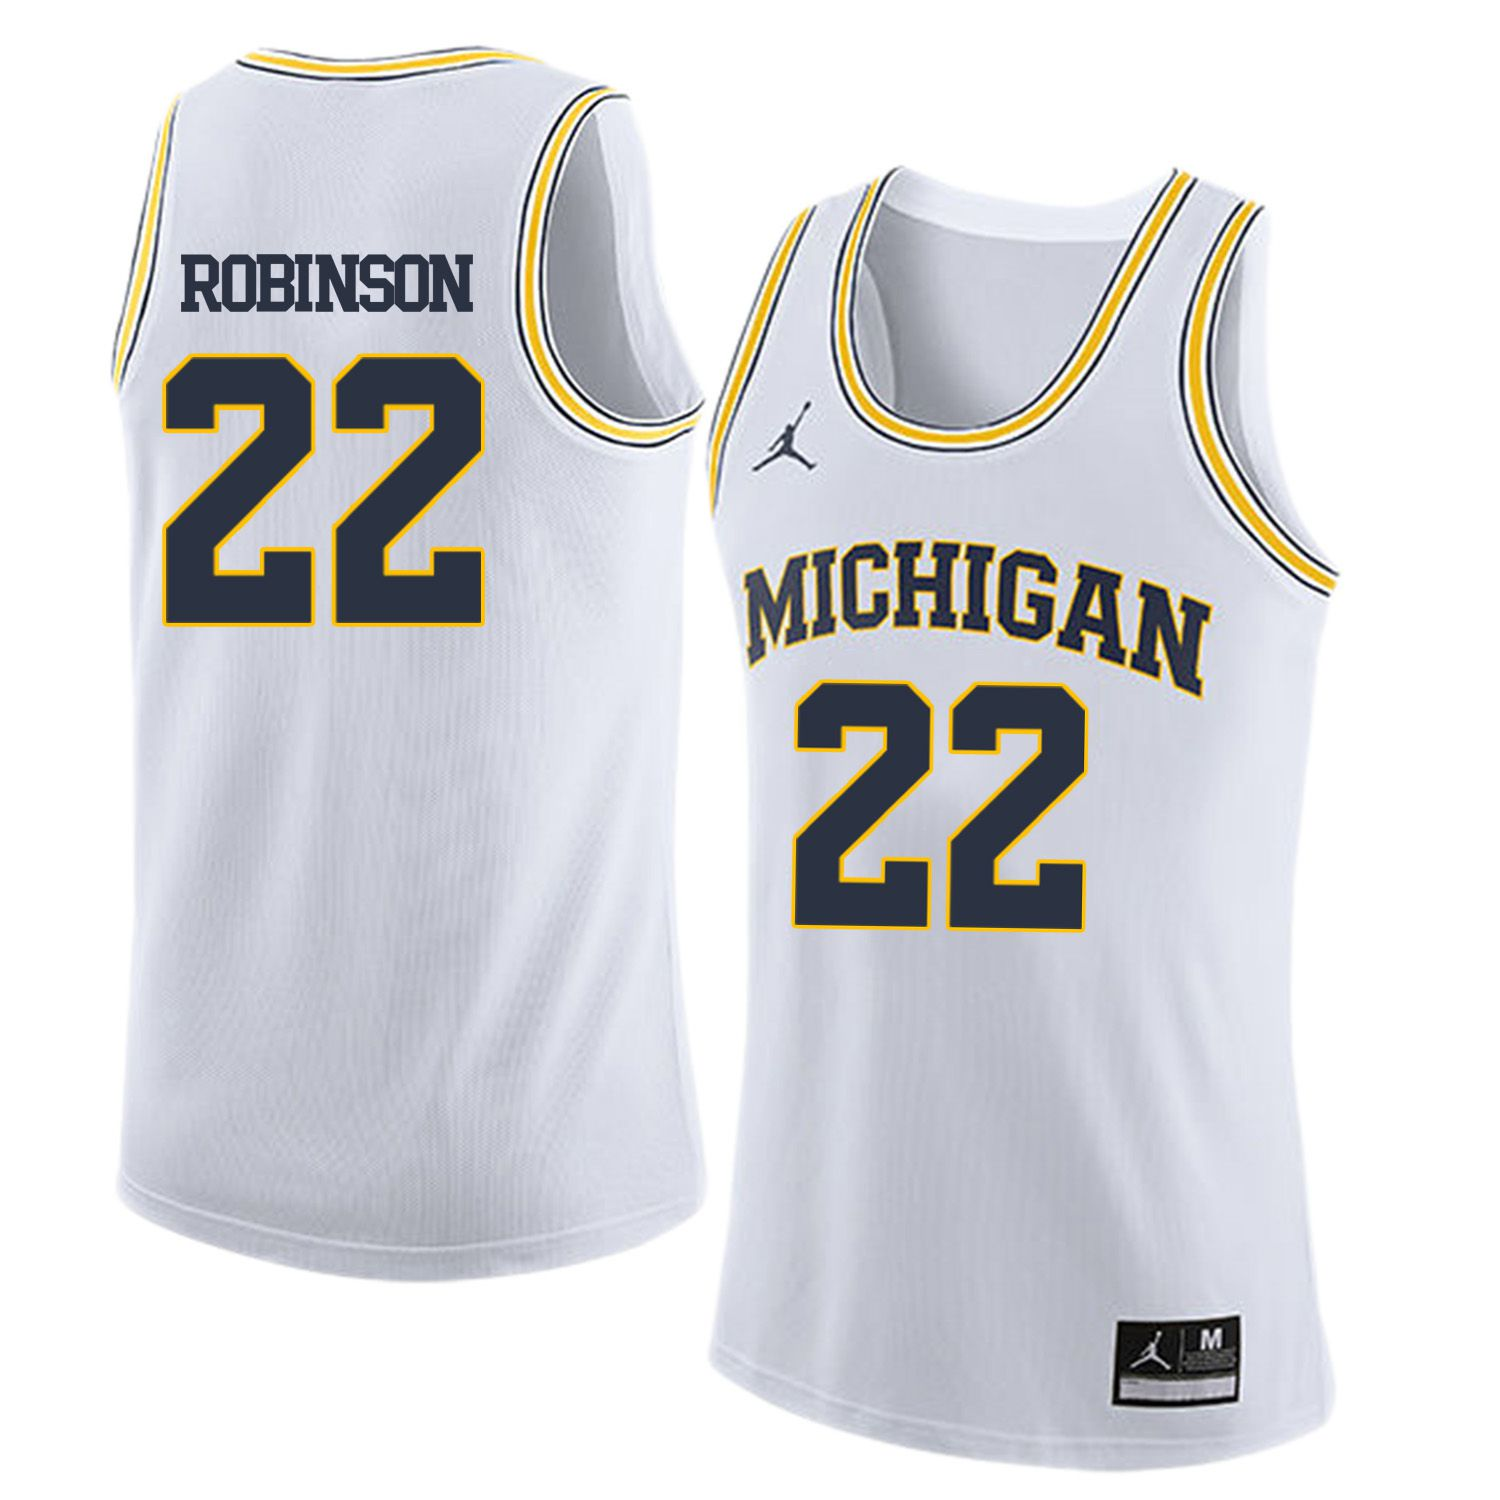 Men Jordan University of Michigan Basketball White 22 Robinson Customized NCAA Jerseys